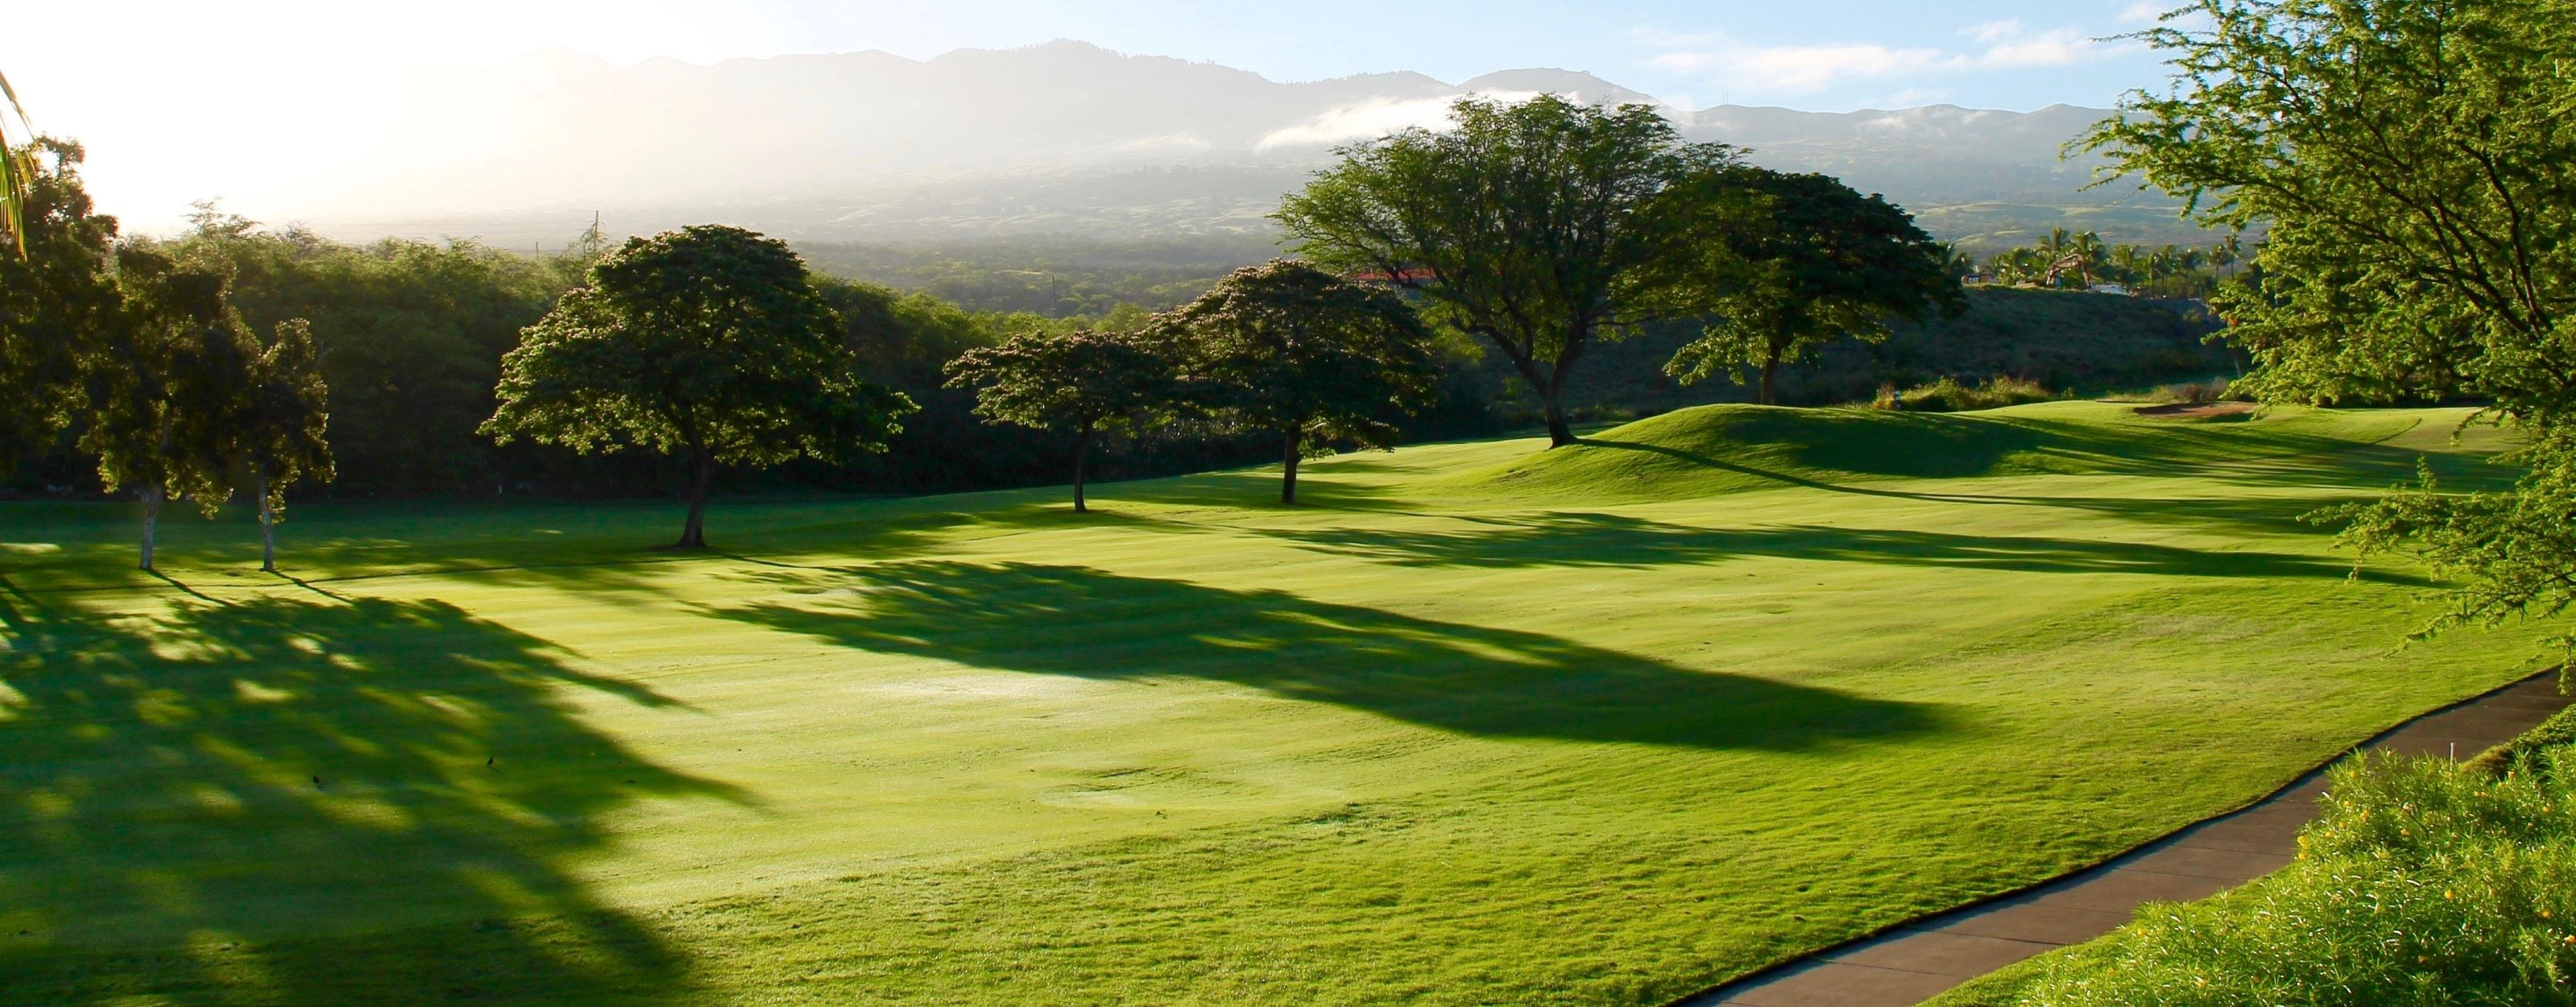 Enjoy a round of golf at our nearby world-class course at The Park Lane.